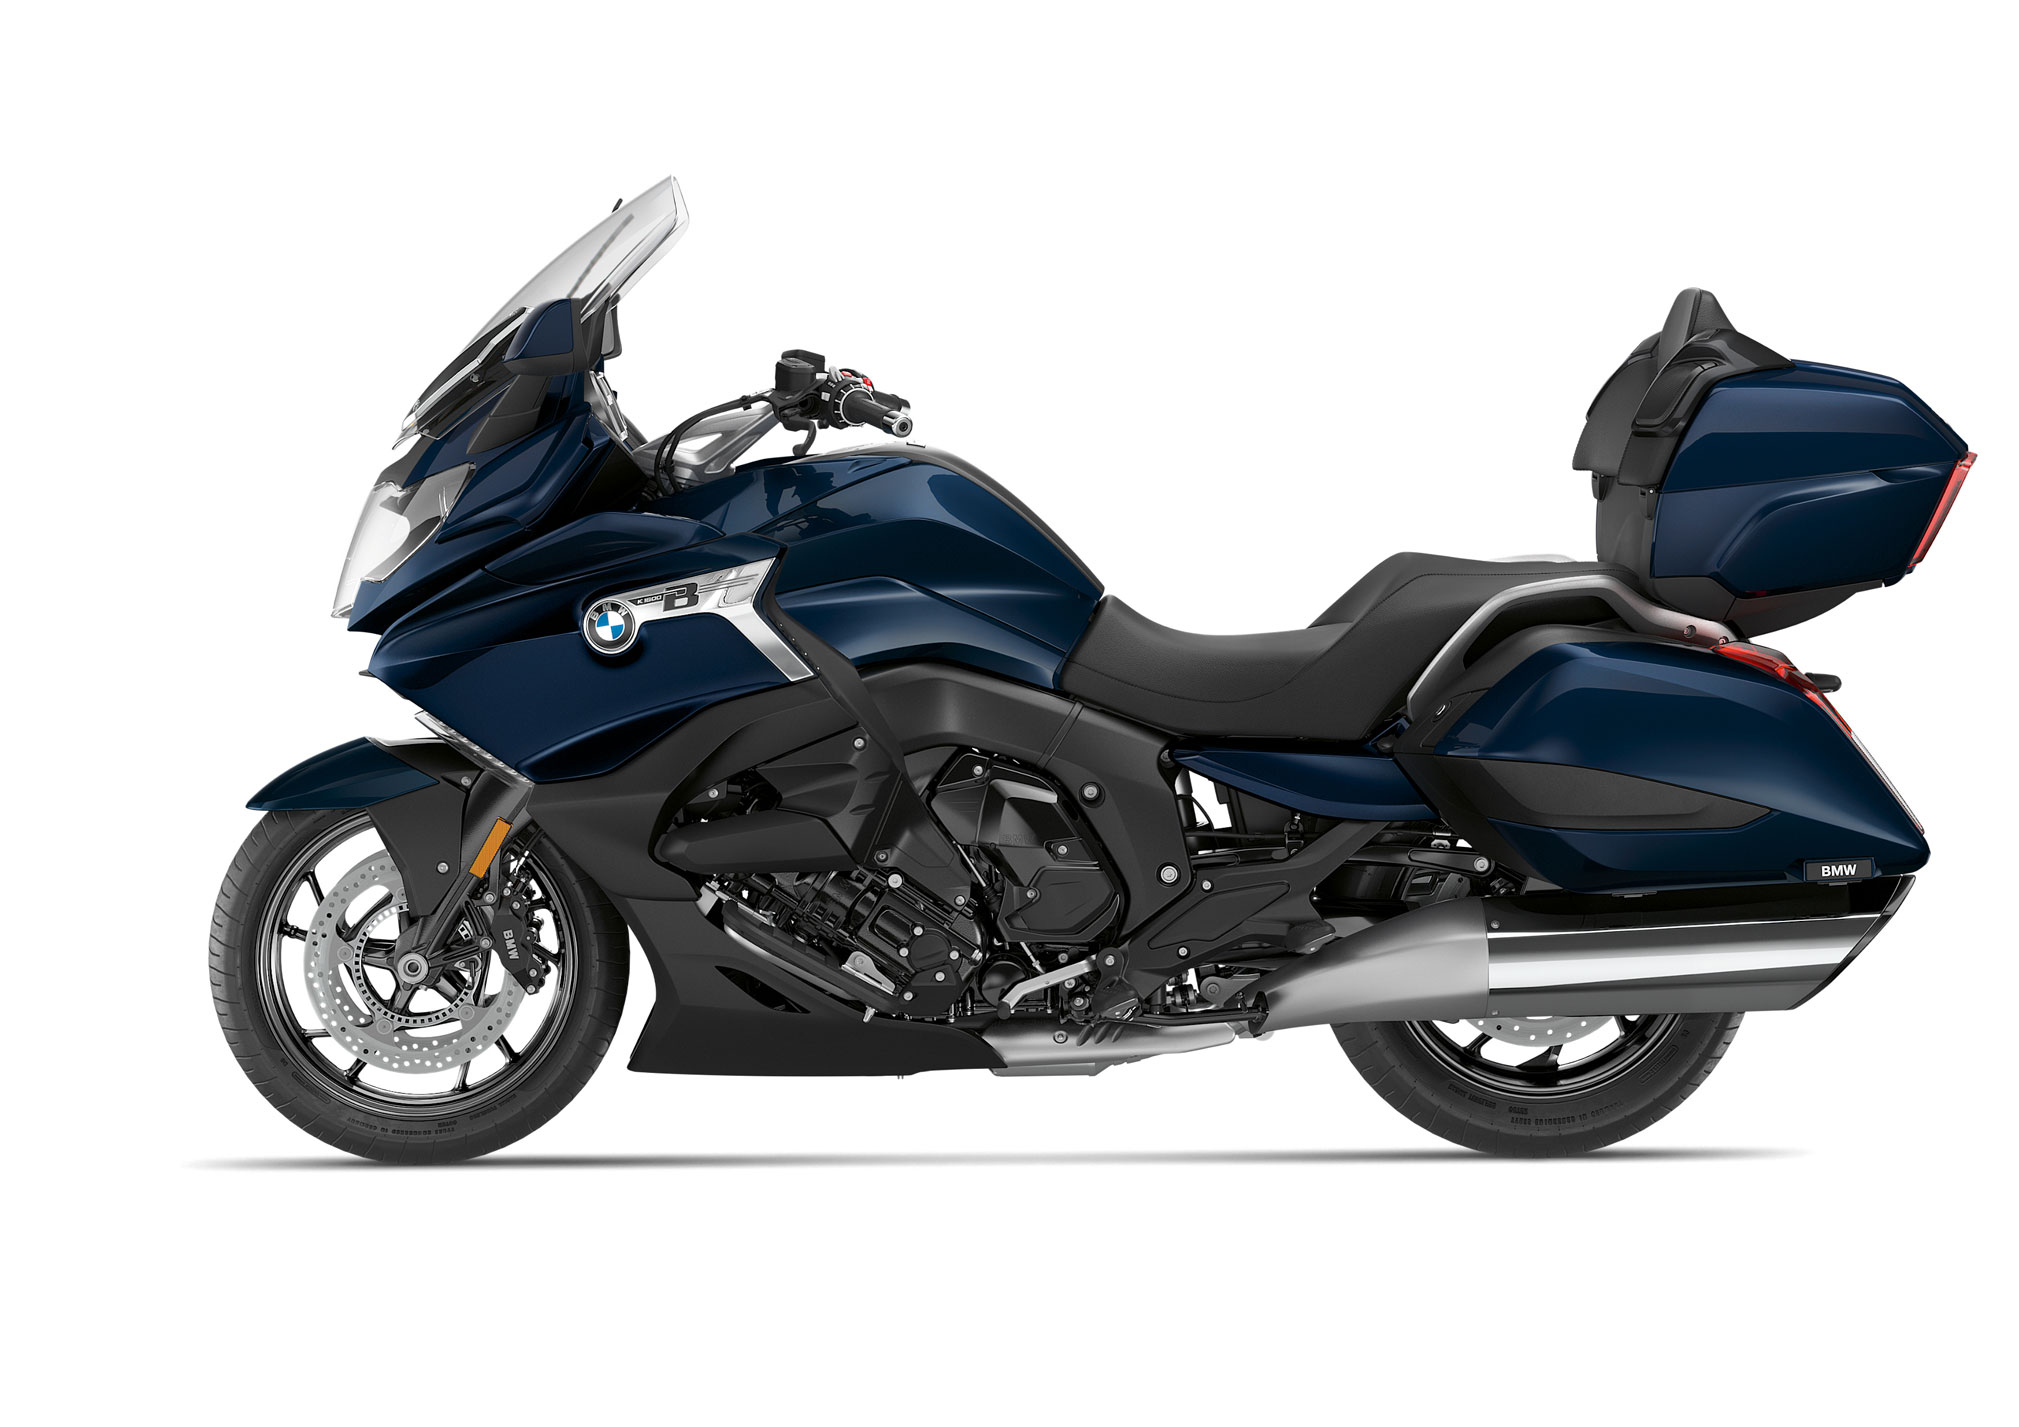 2019 Bmw K1600 Grand America Guide • Totalmotorcycle